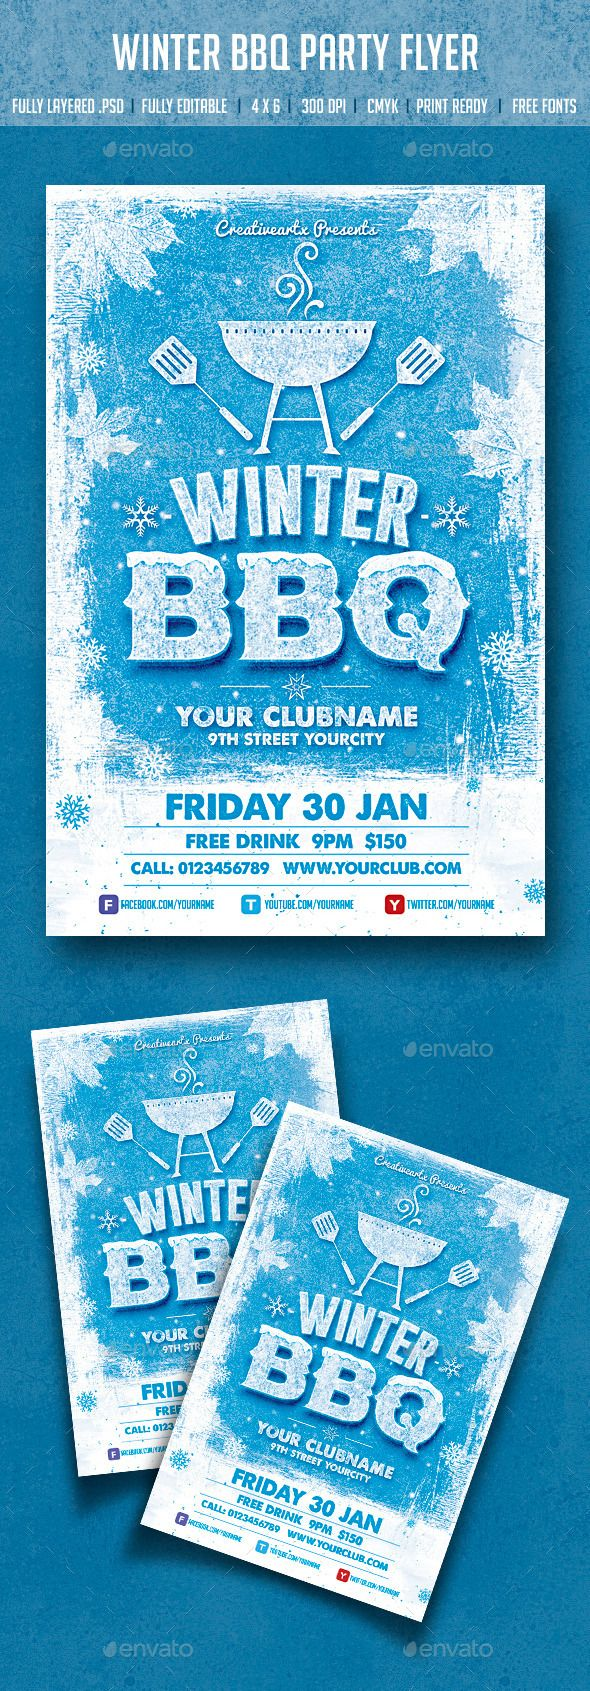 Winter BBQ Party Party Events Flyer Template And Bbq Party